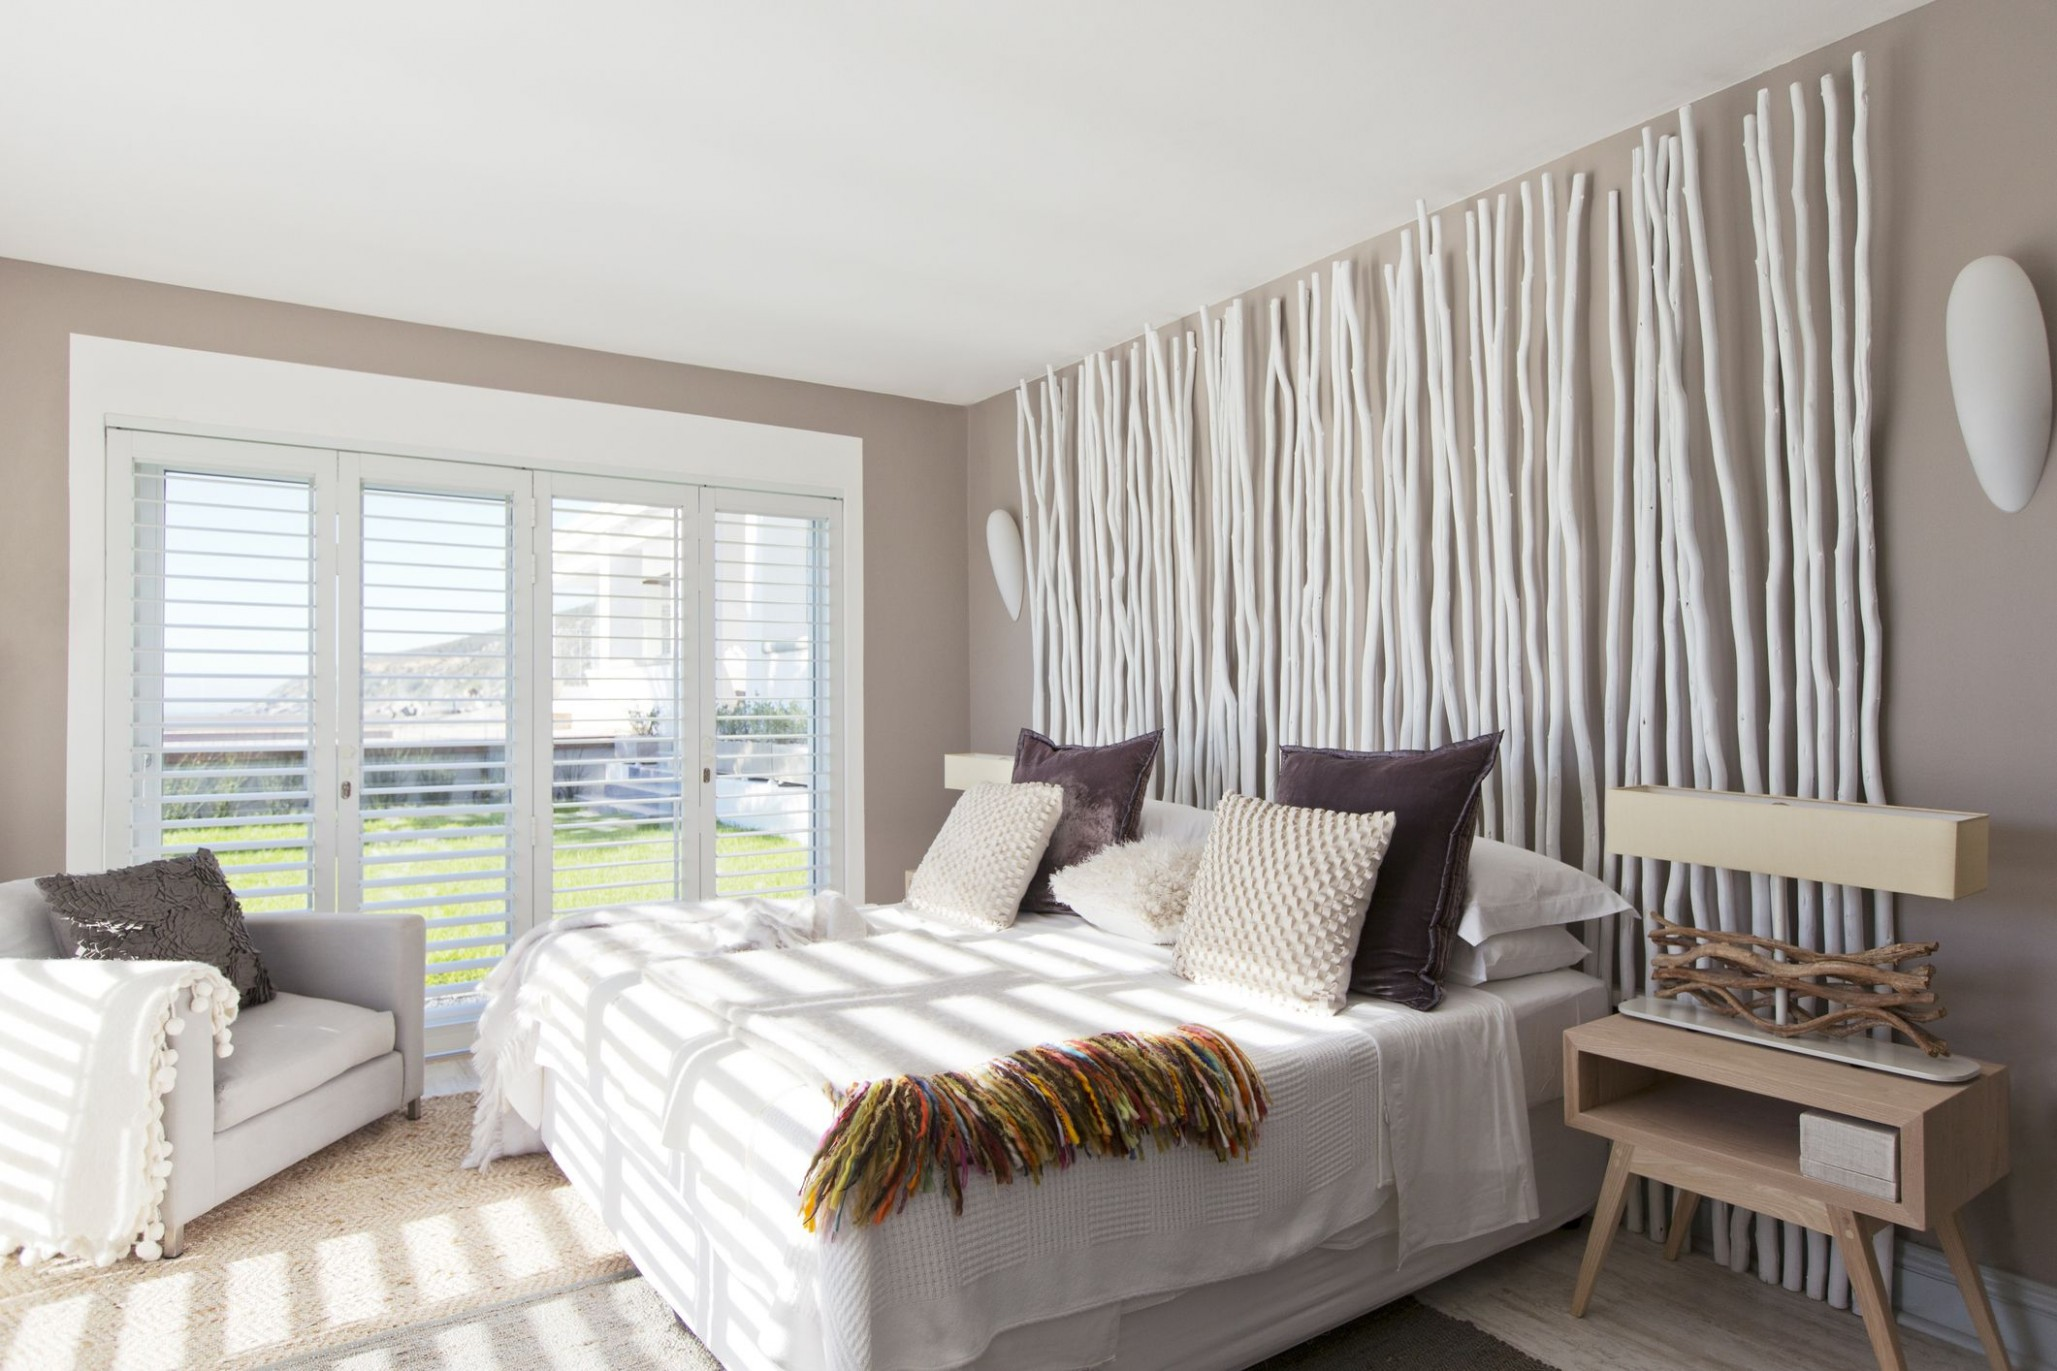 Beautiful Neutral Bedroom Ideas and Photos - Bedroom Ideas Neutral Colors